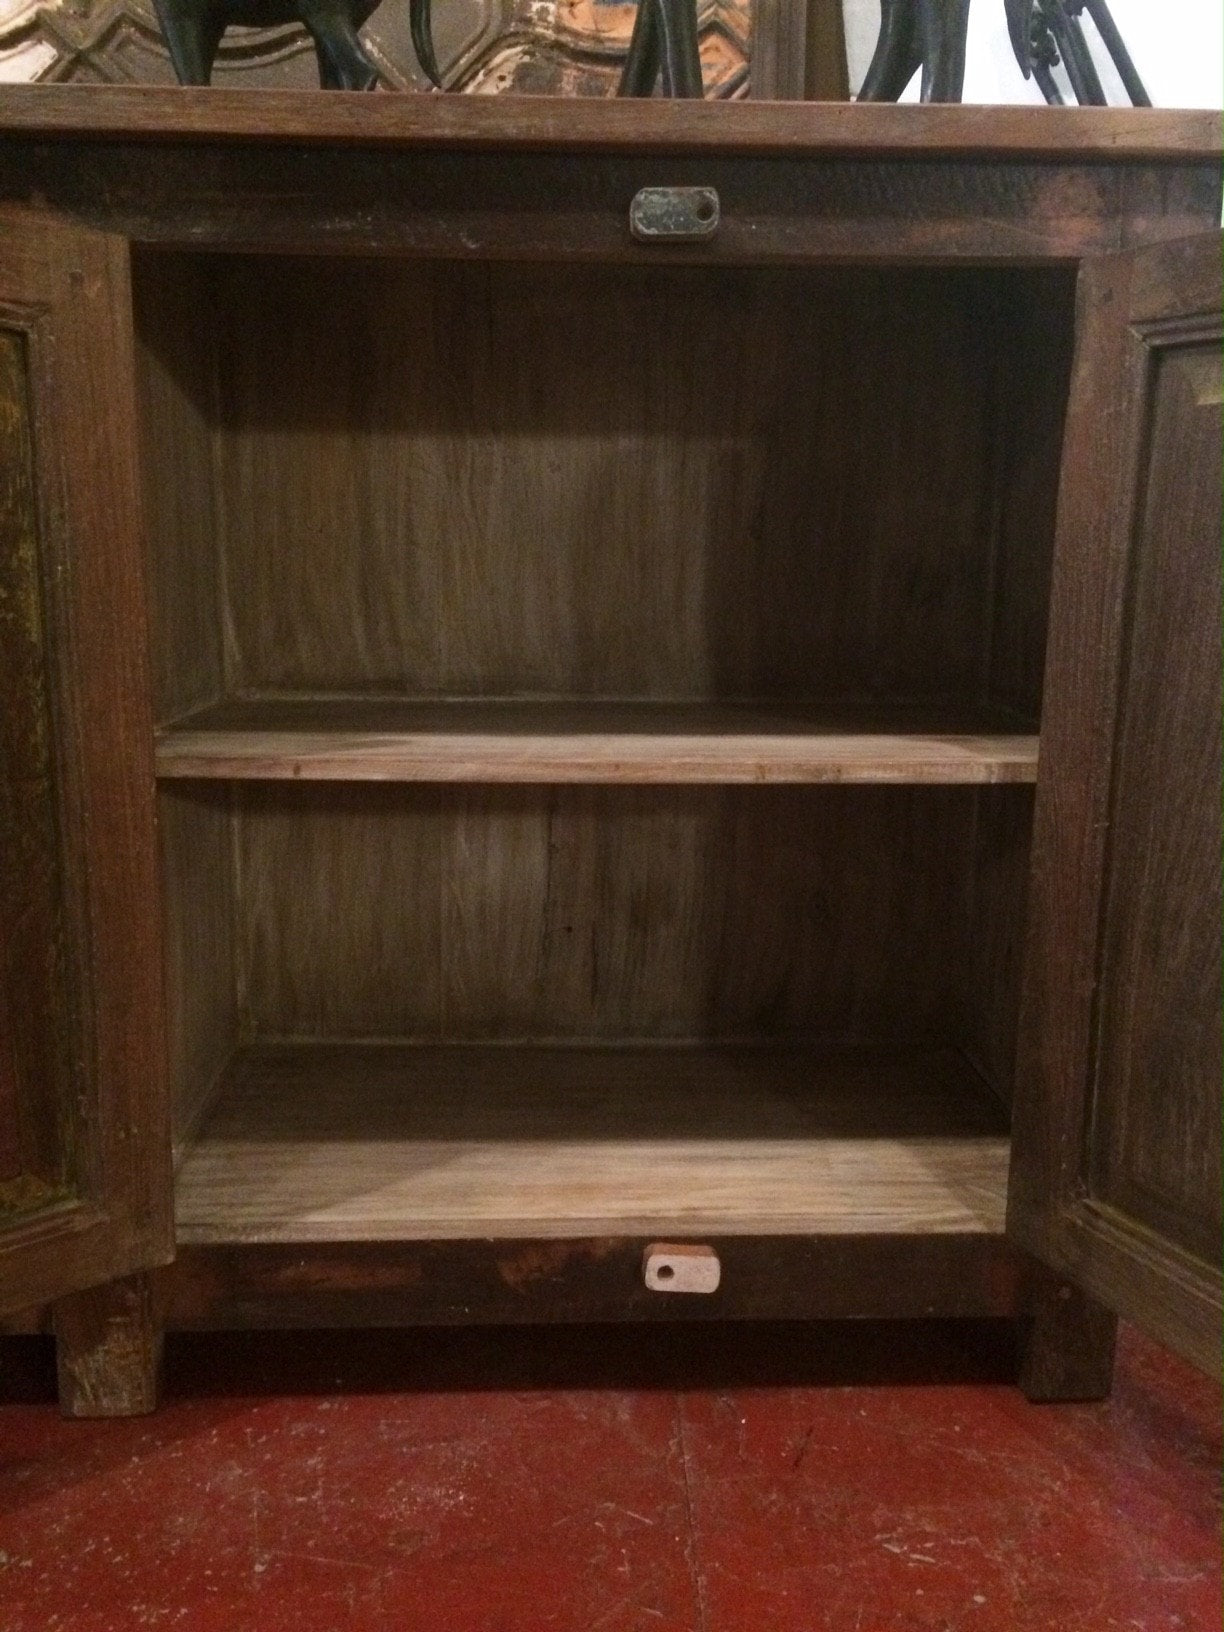 reclaimed wood sideboard with closed cabinets  open shelving  - reclaimed wood sideboard with closed cabinets  open shelving